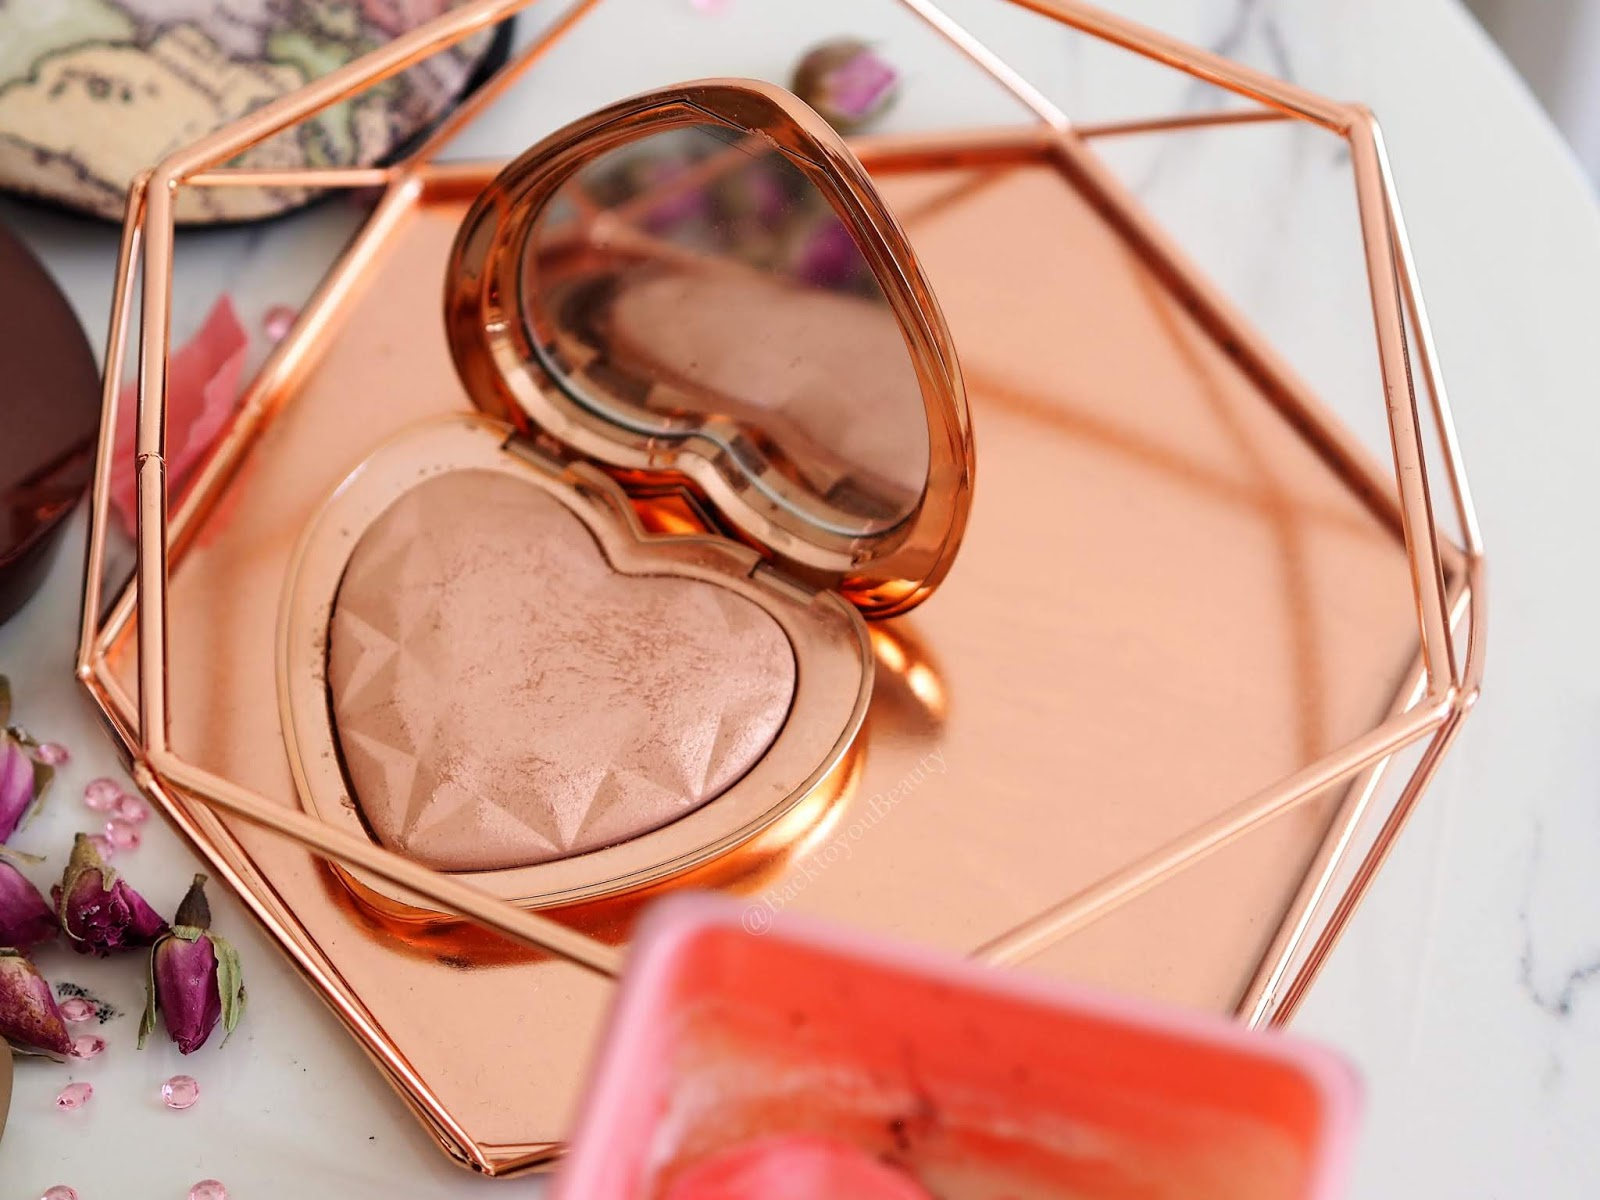 Too Faced Love Light Ray of Light Prismatic Highlighter